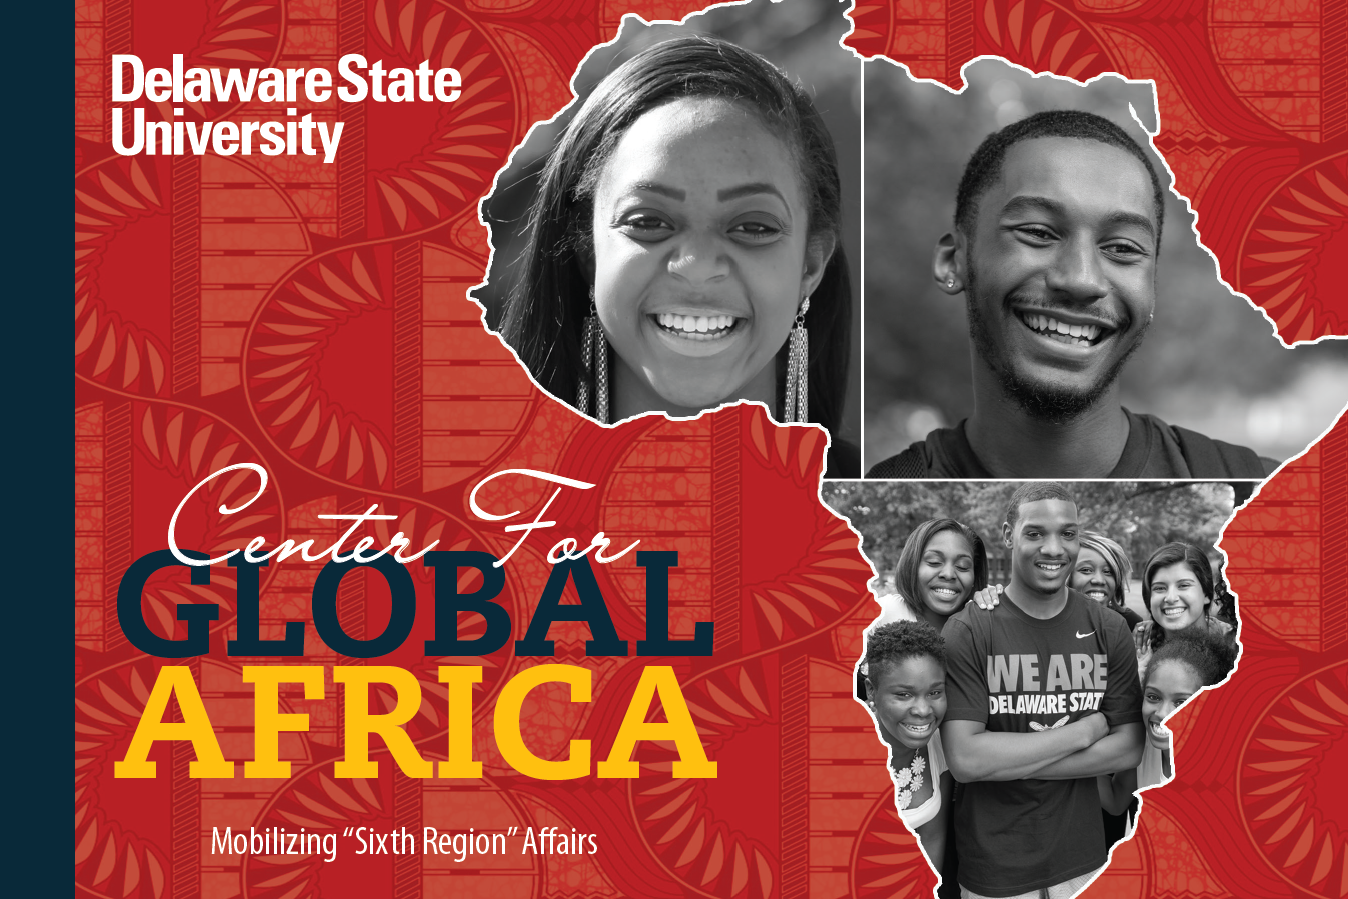 Center for Global Africa